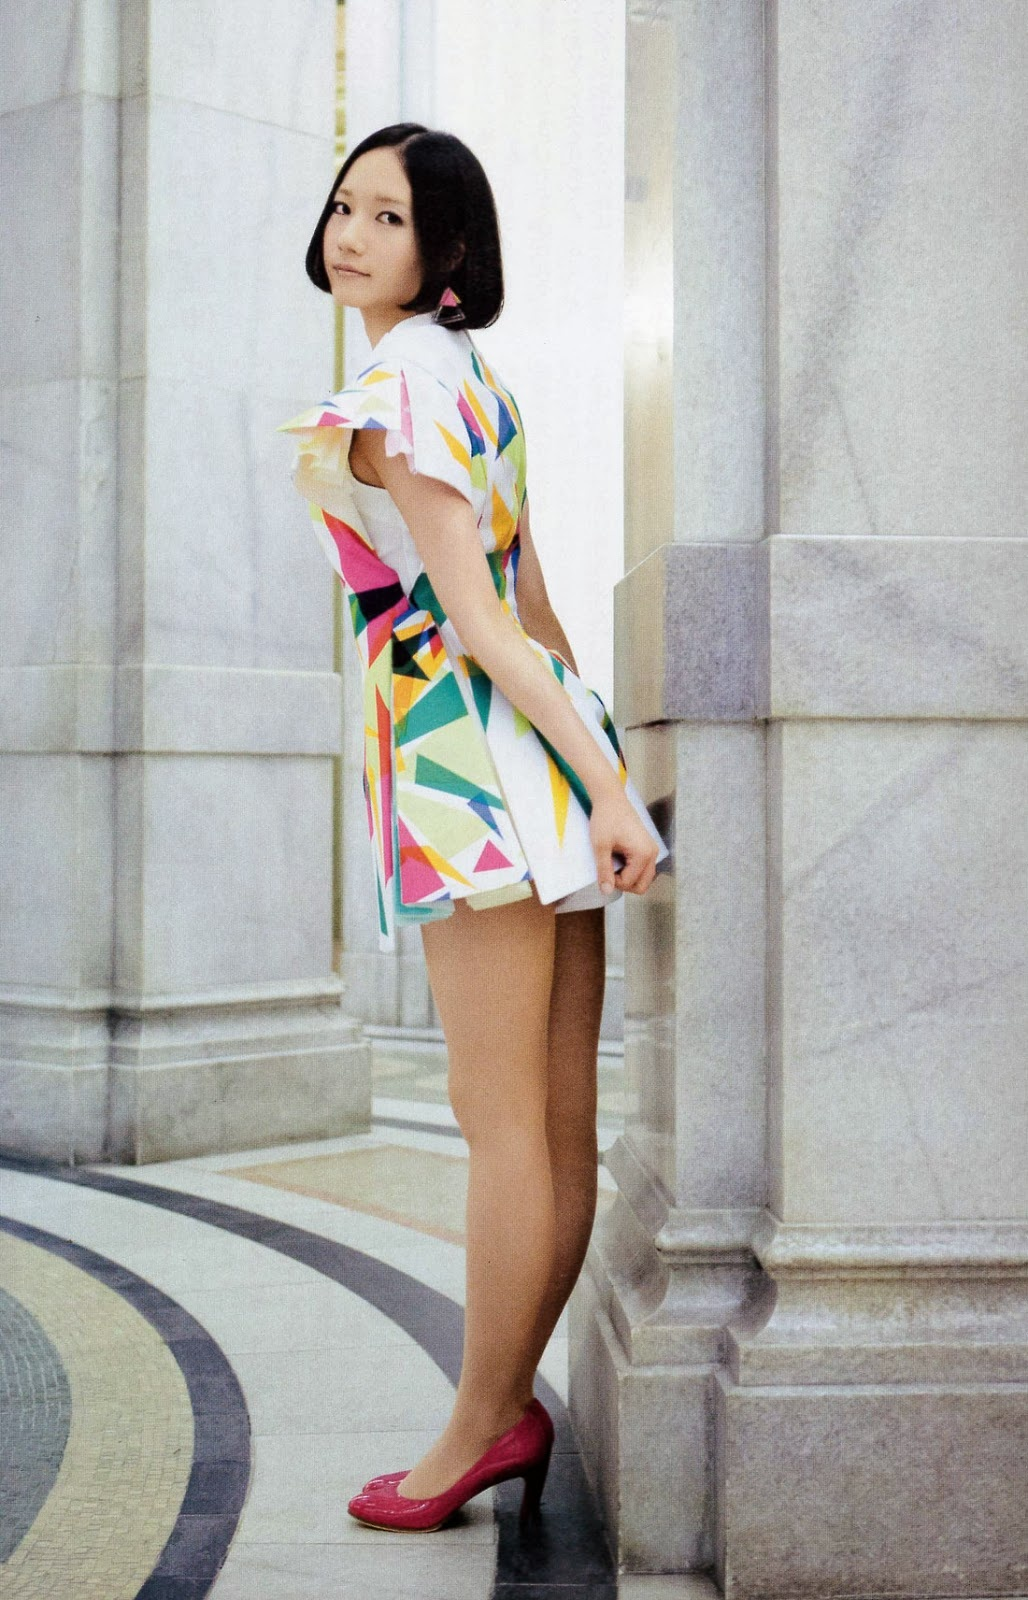 Nocchi Android/iPhone Wallpaper #33563 - Asiachan KPOP ...